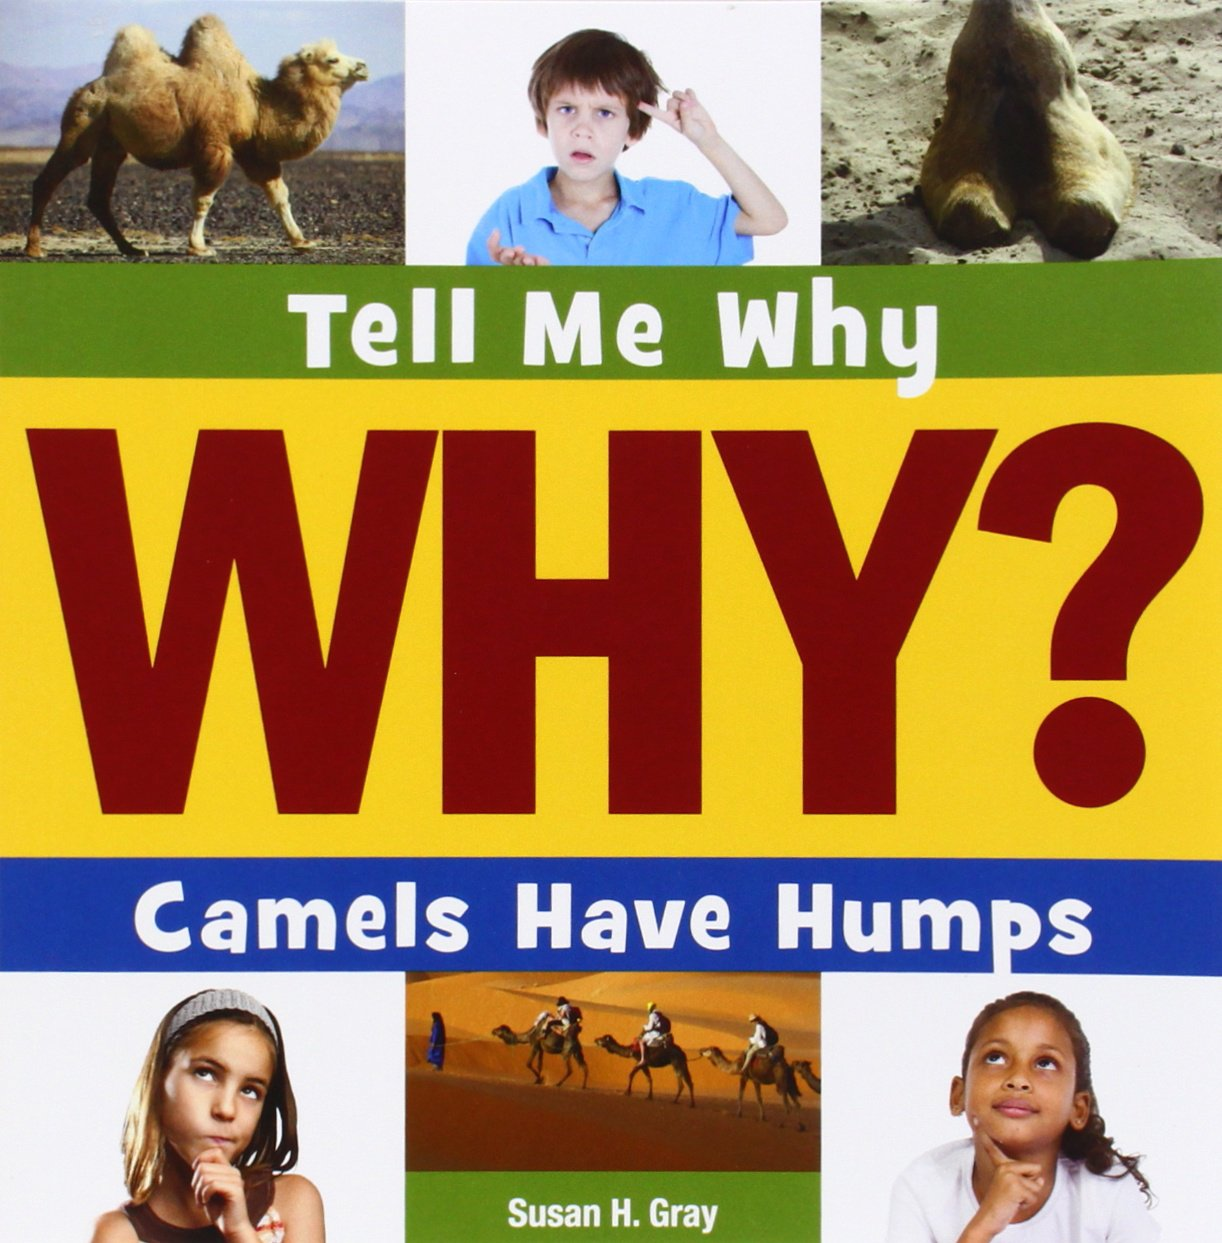 Camels Have Humps (Tell Me Why) pdf